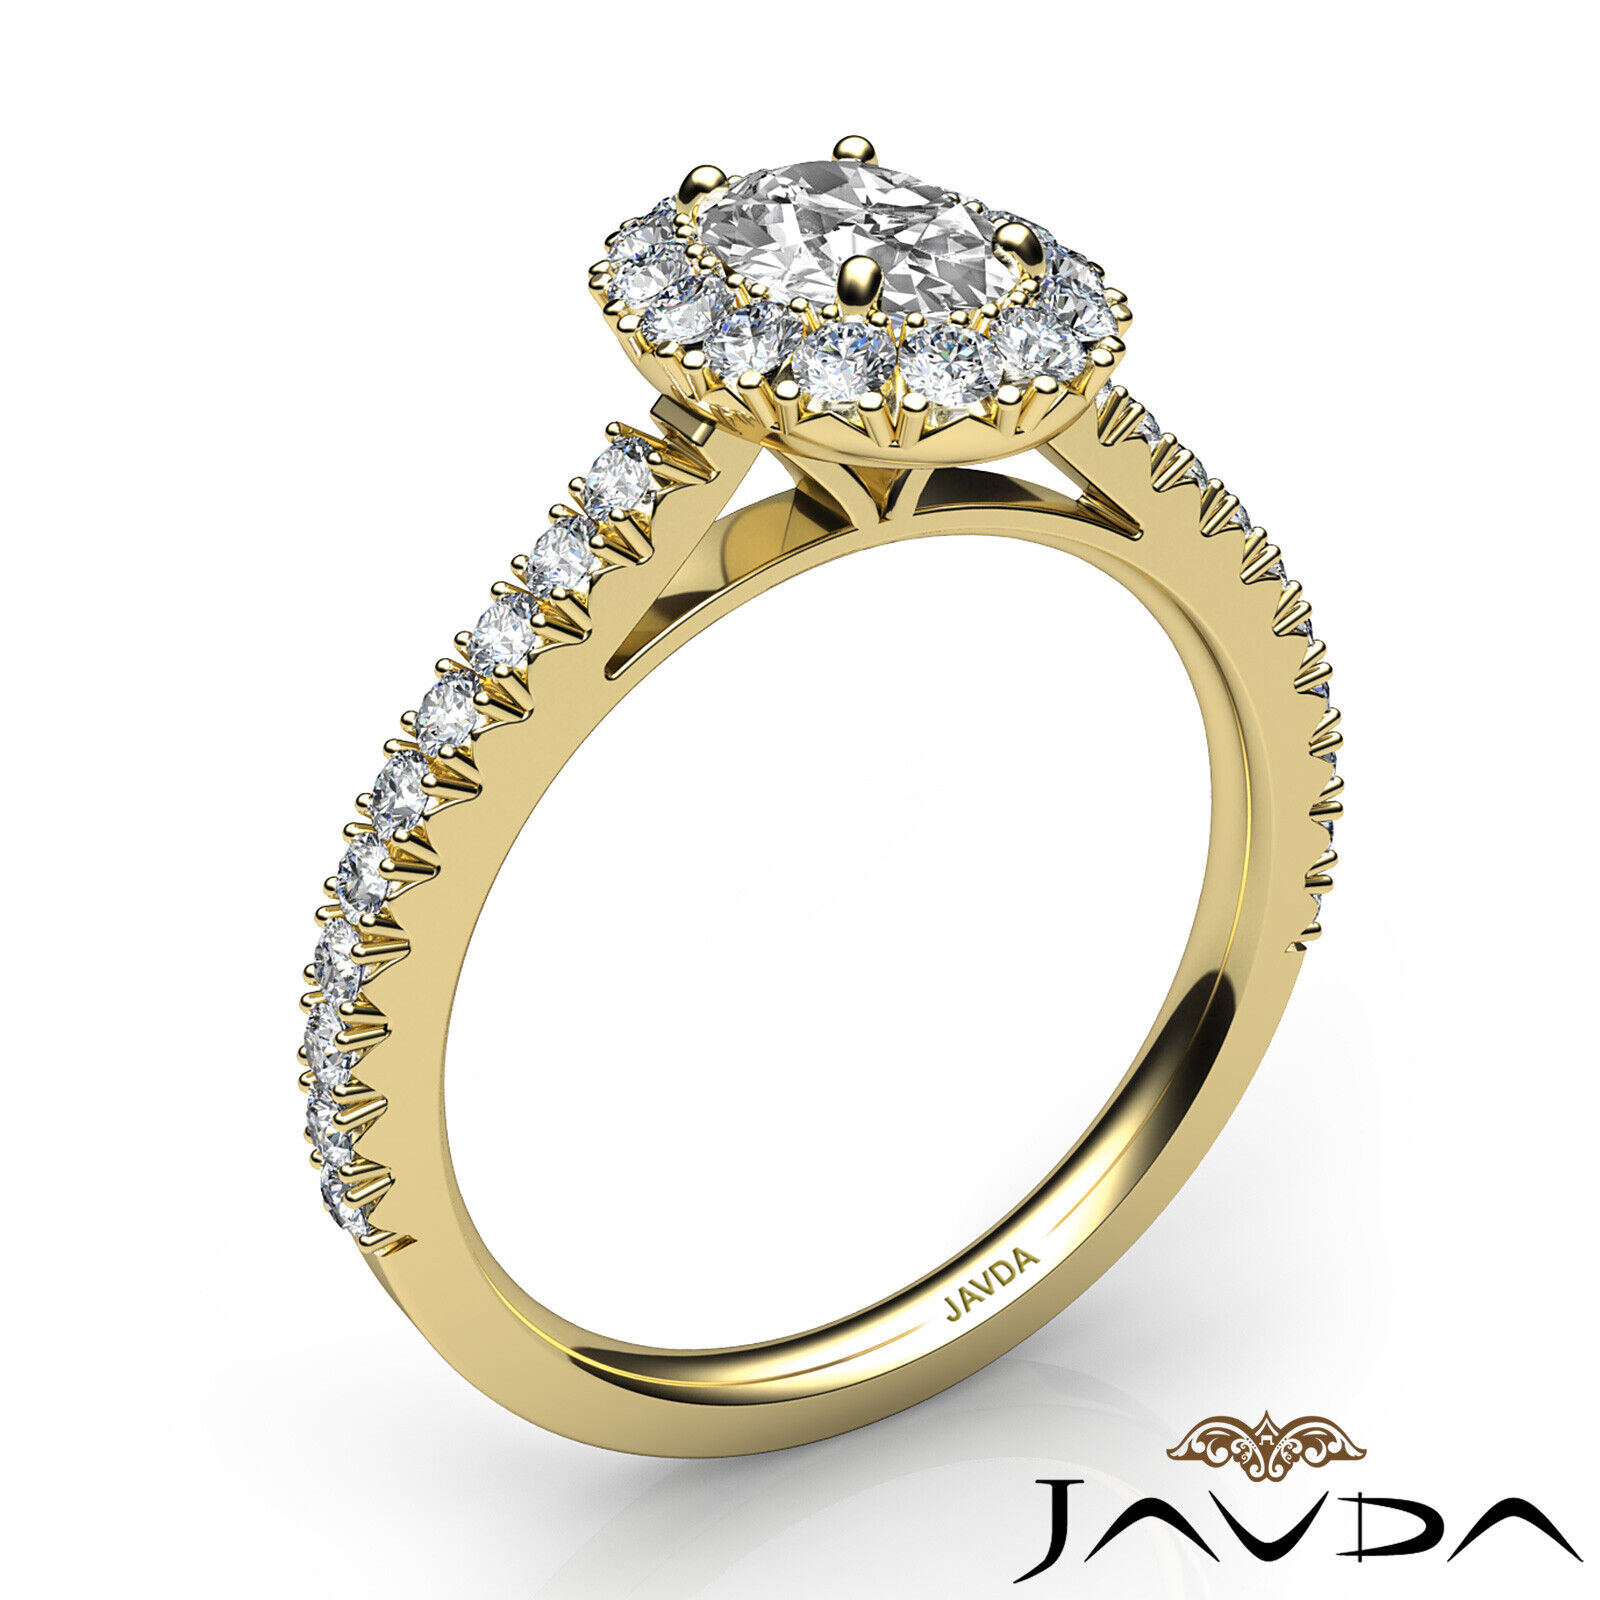 1.5ctw French V Cut Halo Pave Oval Diamond Engagement Ring GIA F-VVS2 White Gold 11